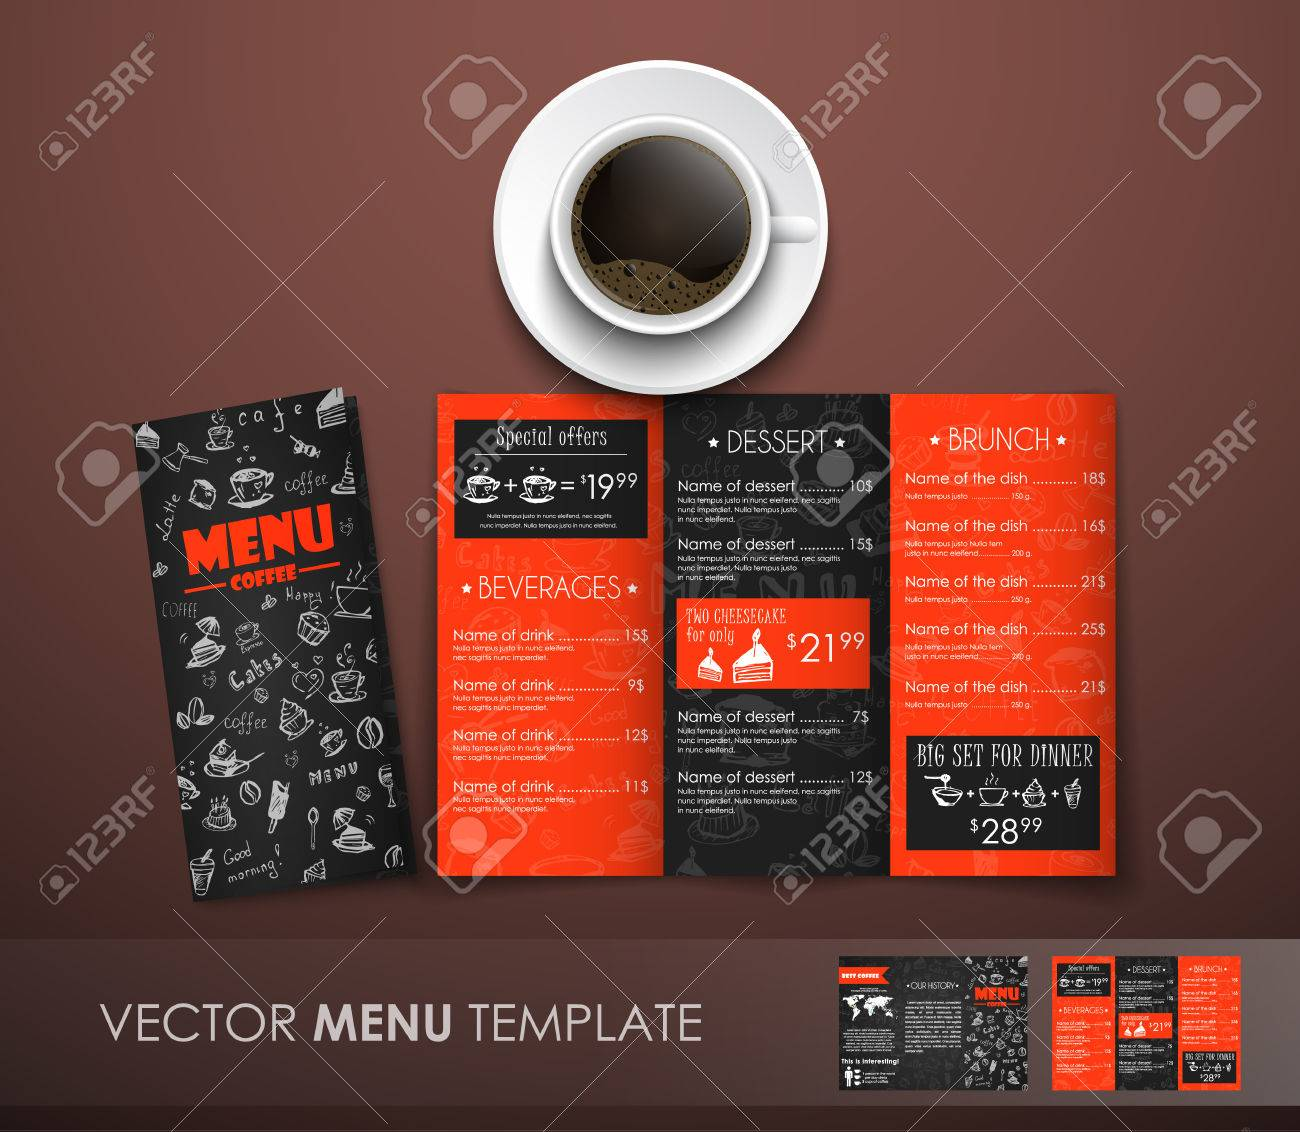 design triple folding menu black and red with elements of drawings